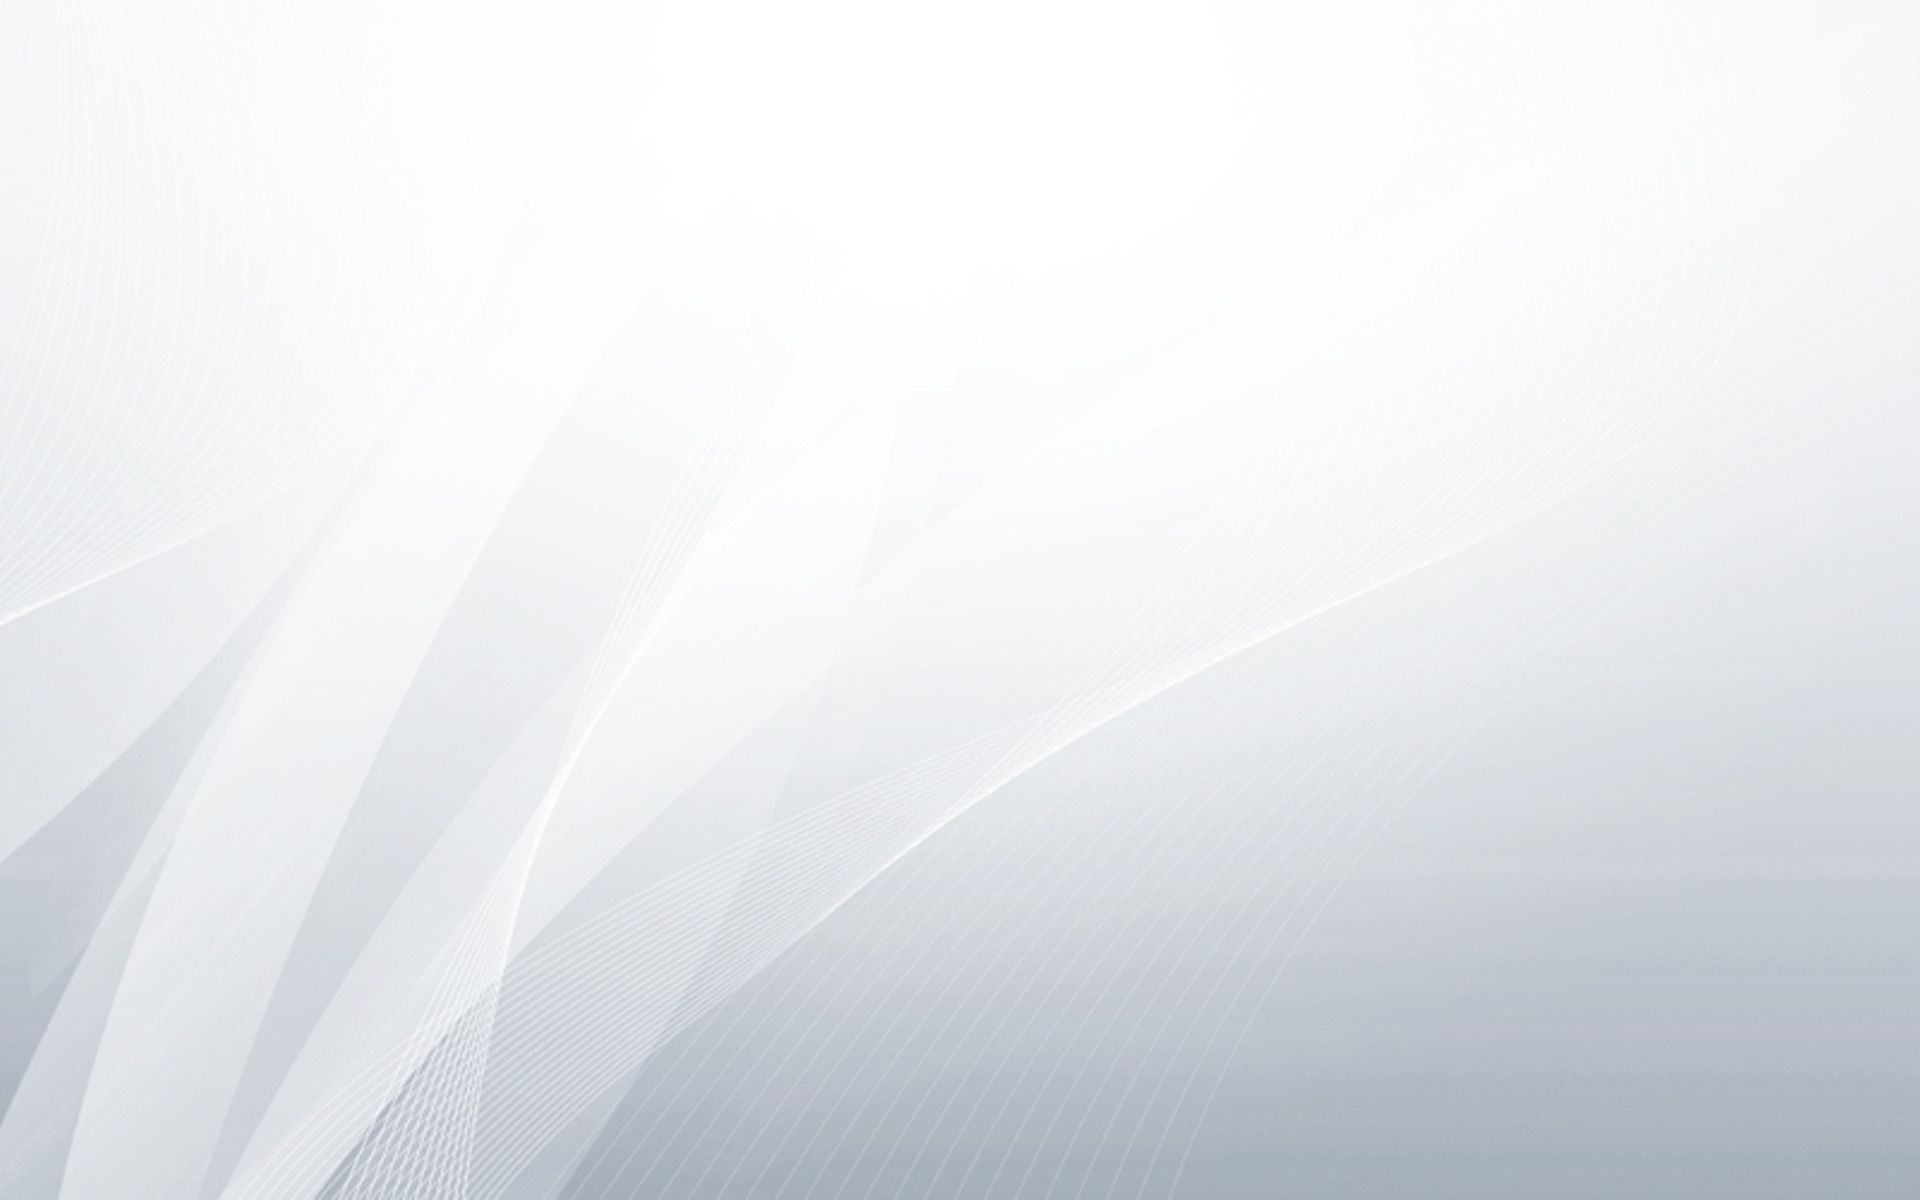 White Abstract Wallpapers Hd Sdeerwallpaper Grey Wallpaper Background Abstract Wallpaper White Background Images